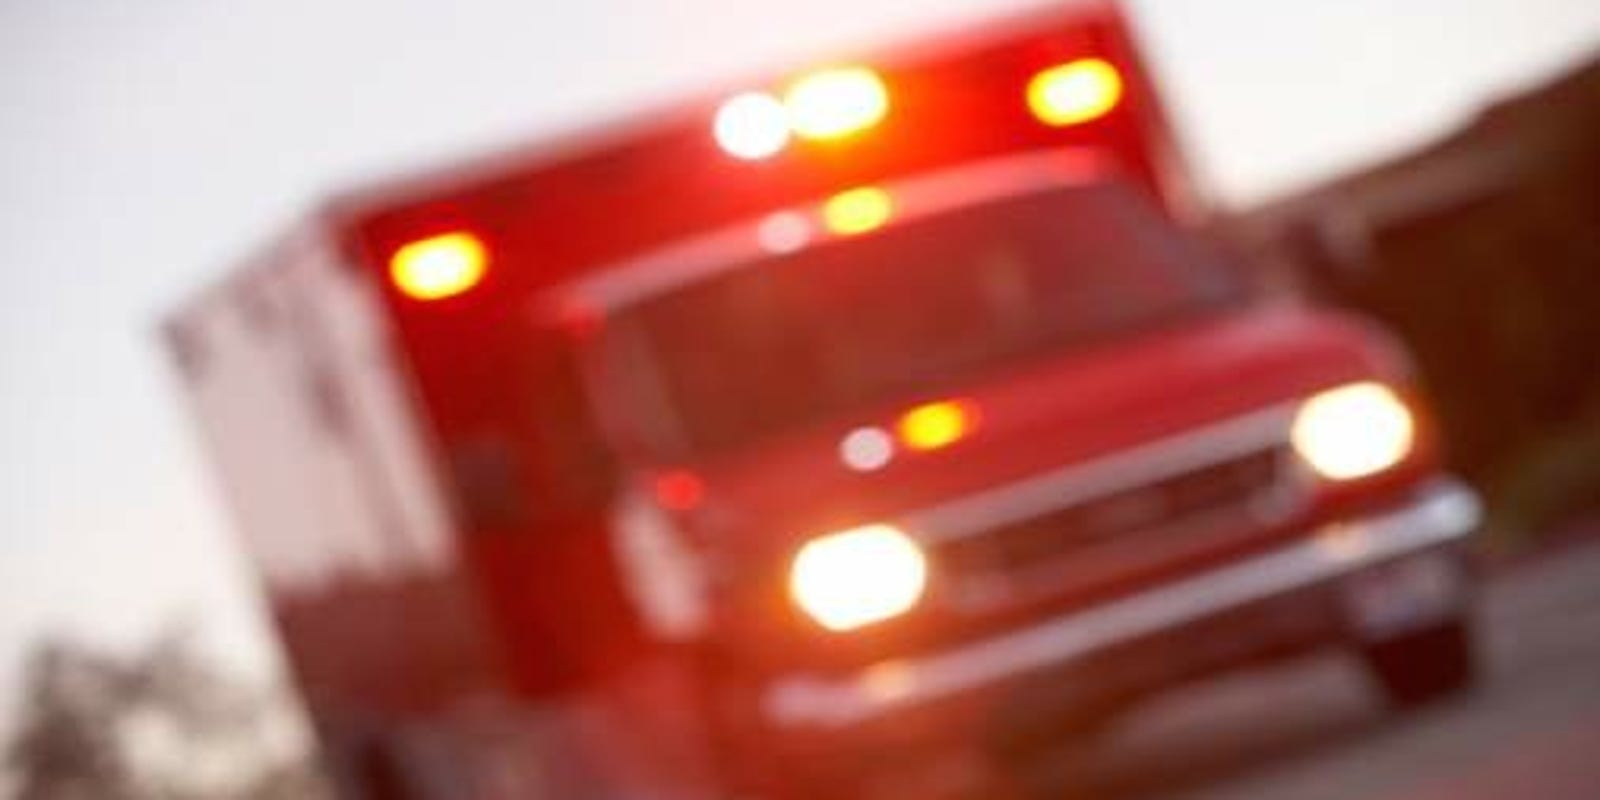 Green Lake tractor rollover: Man killed after farming accident